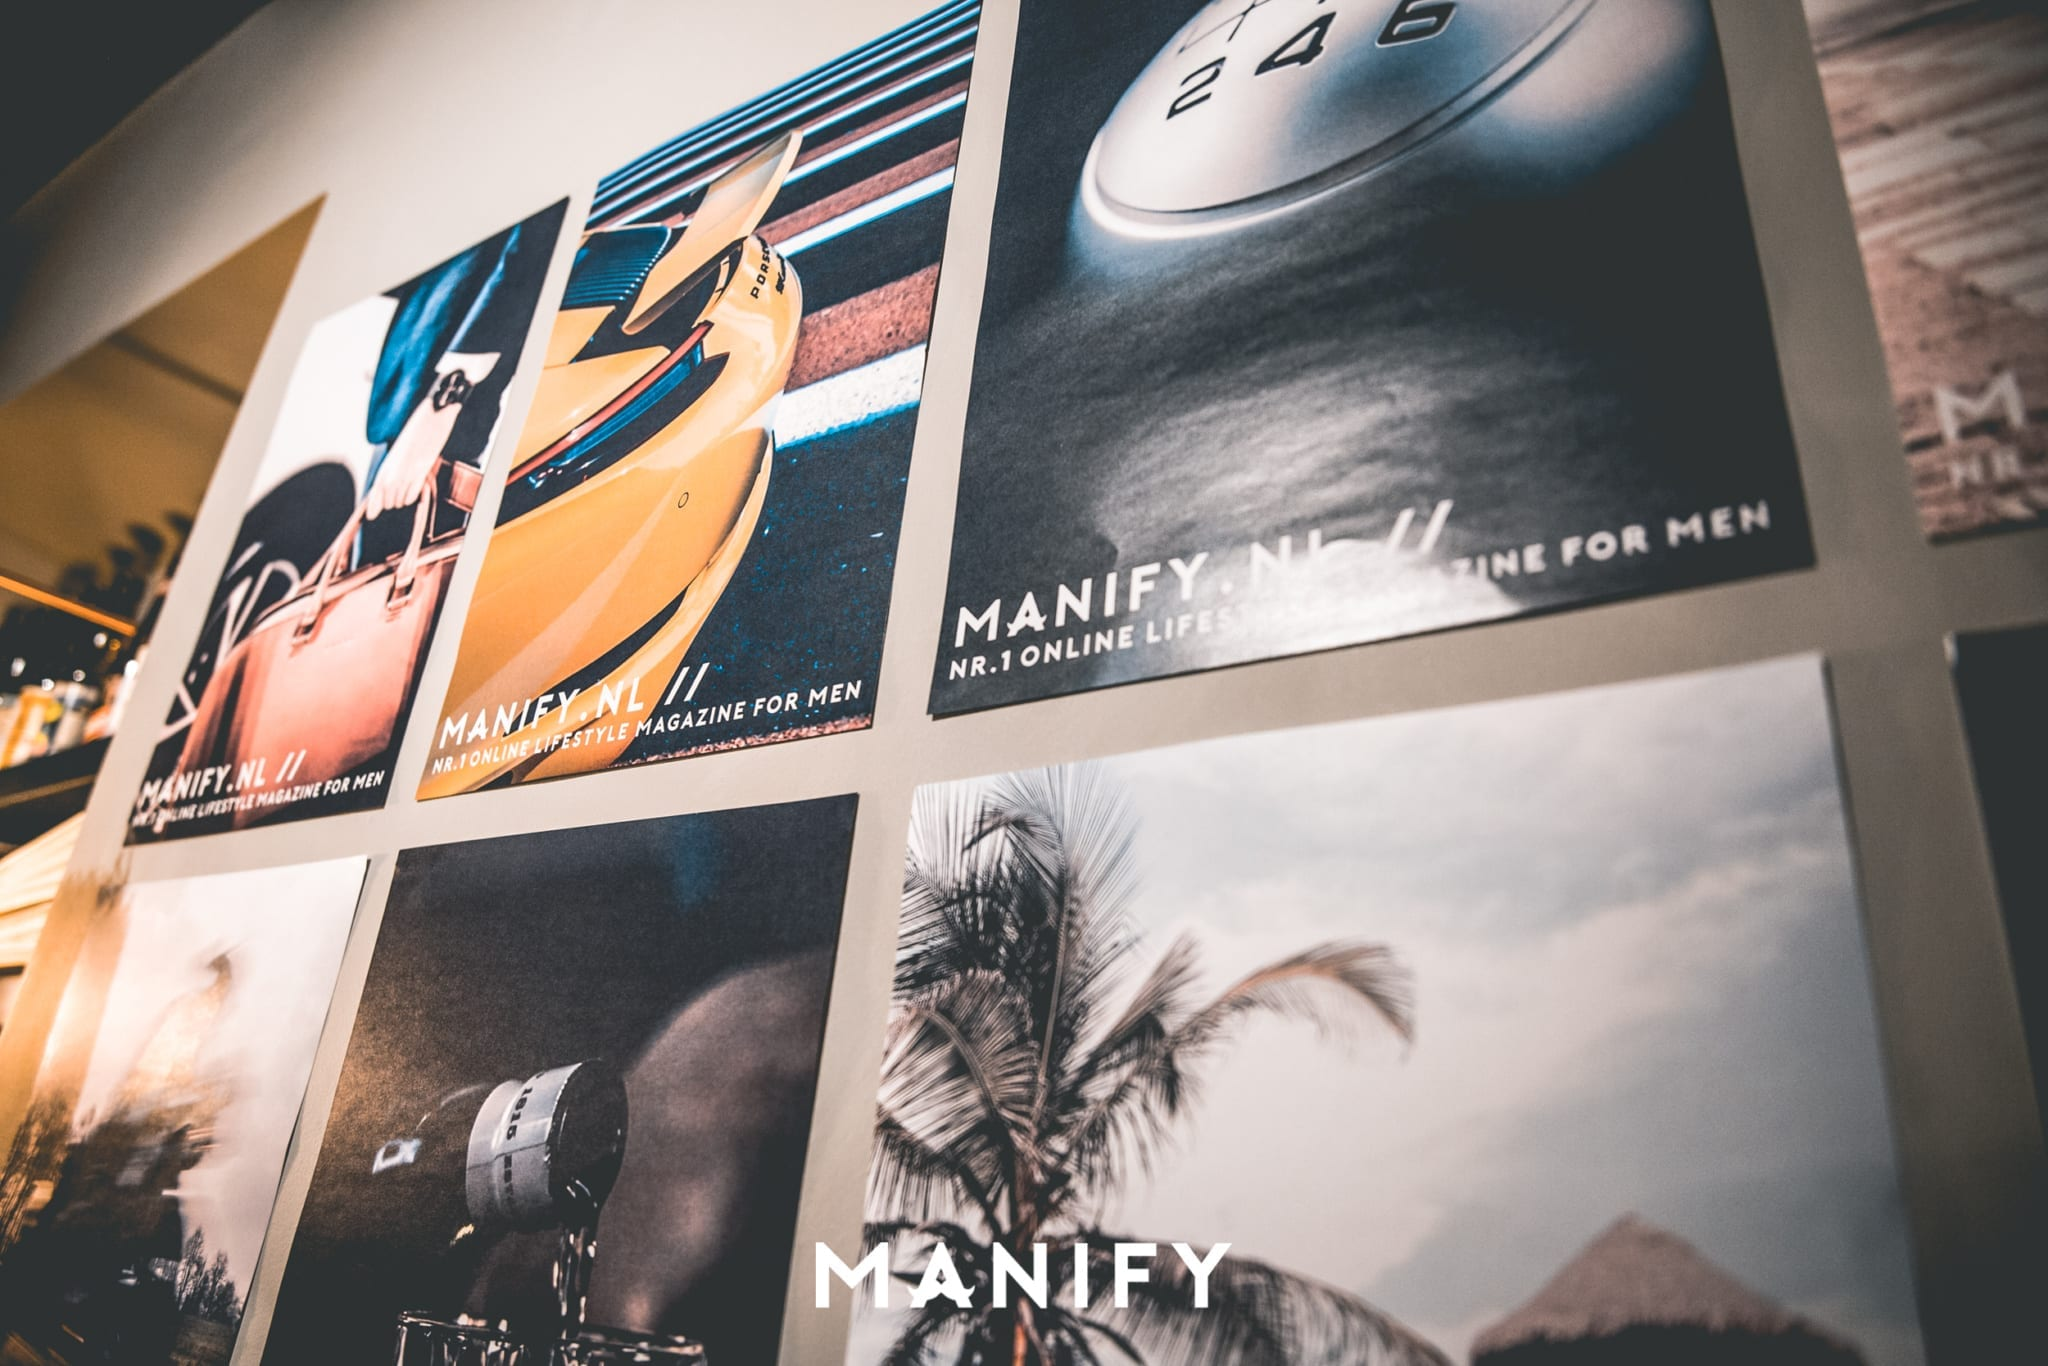 Manify_Out_of_office-E10_WM-5-manify